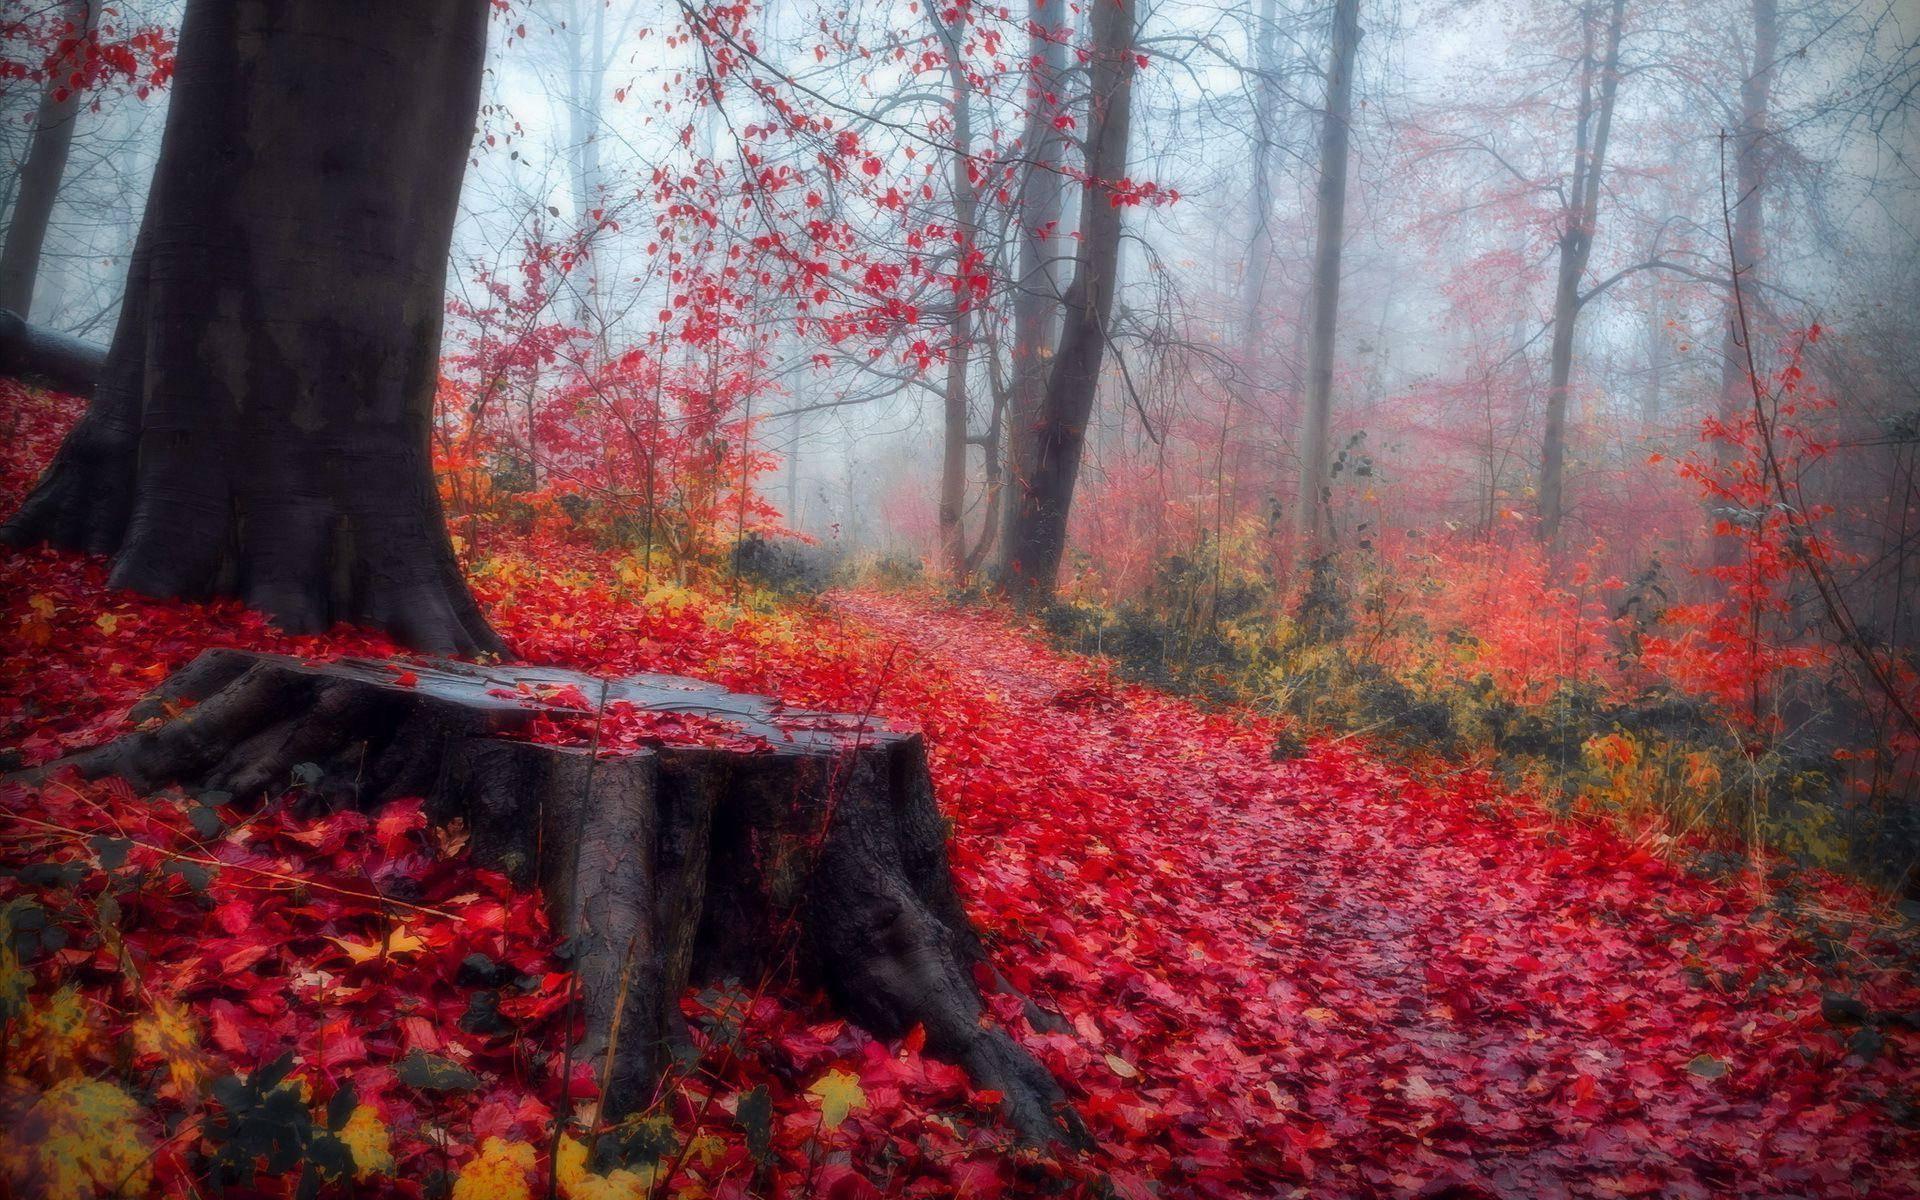 HD Red Leaves In The Autumn Forest Wallpaper Download